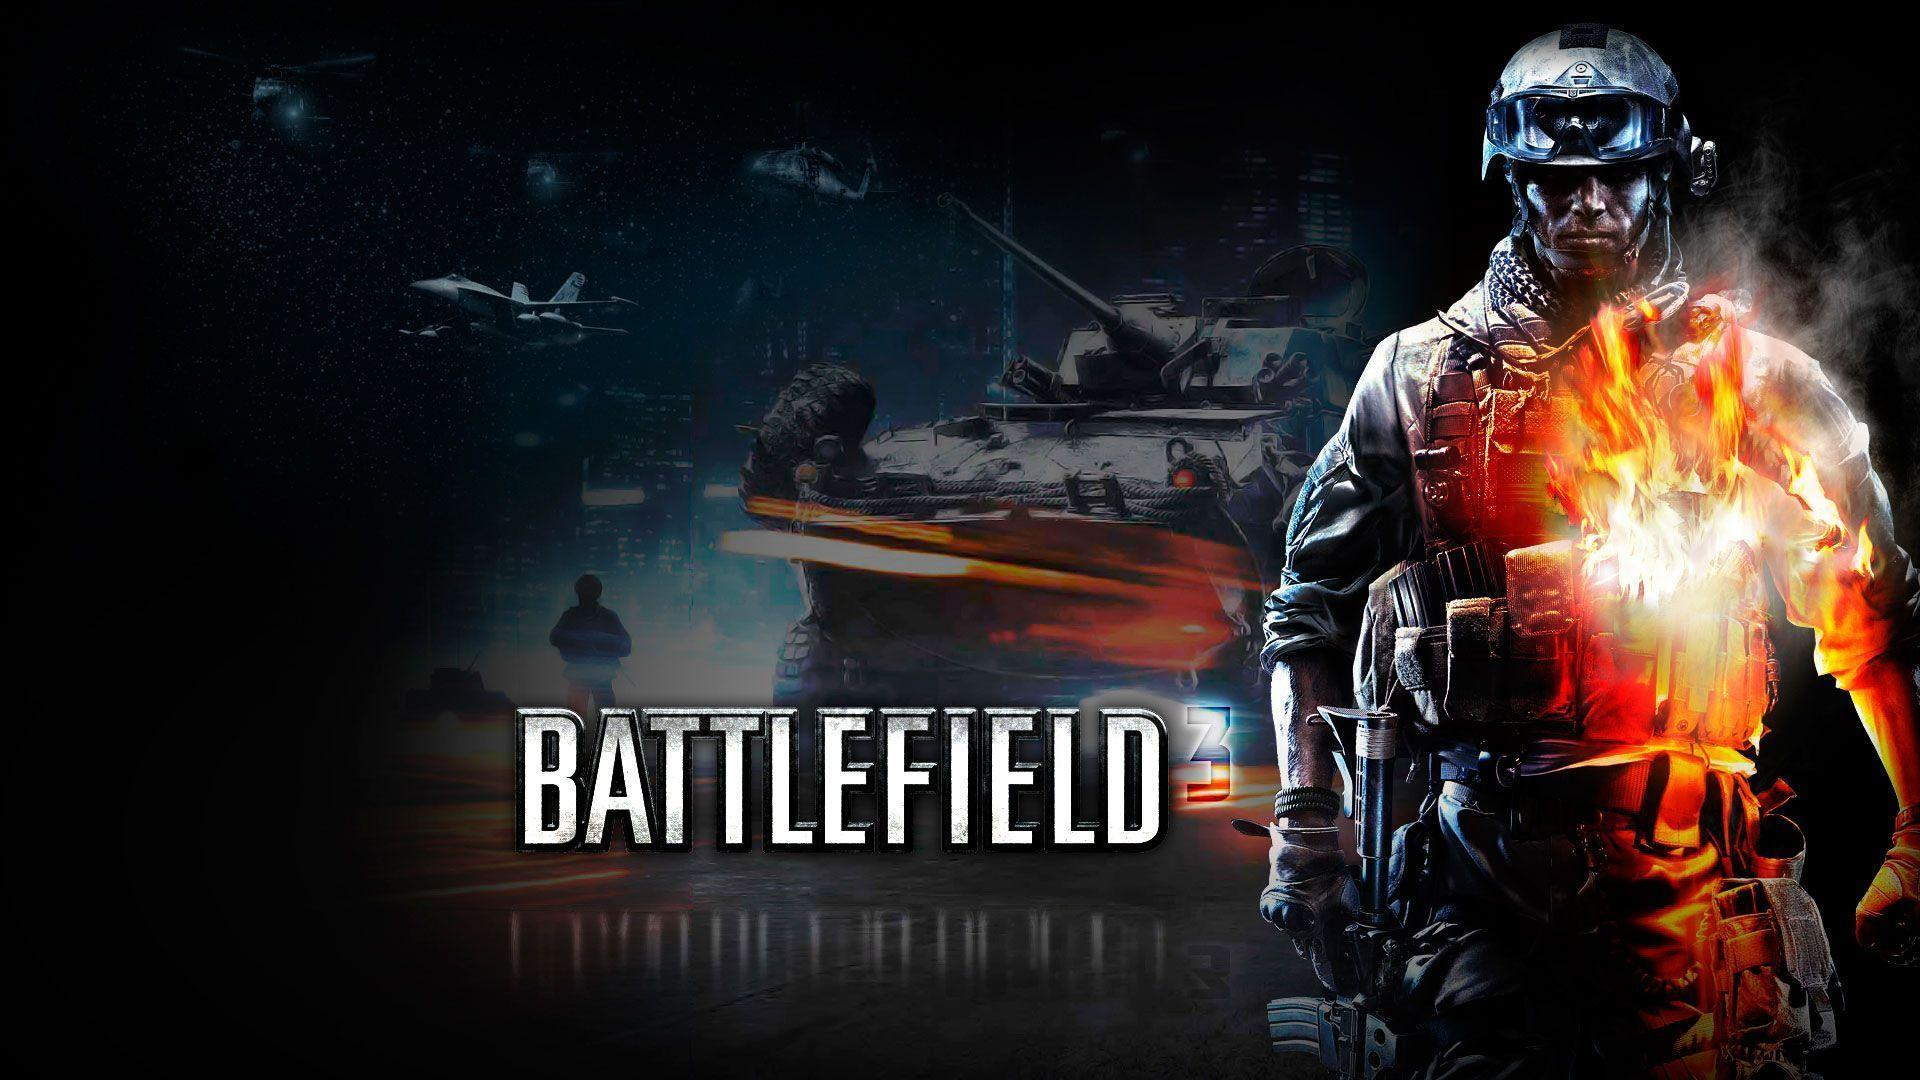 Battlefield 3 HD Wallpapers - HD Wallpapers Inn